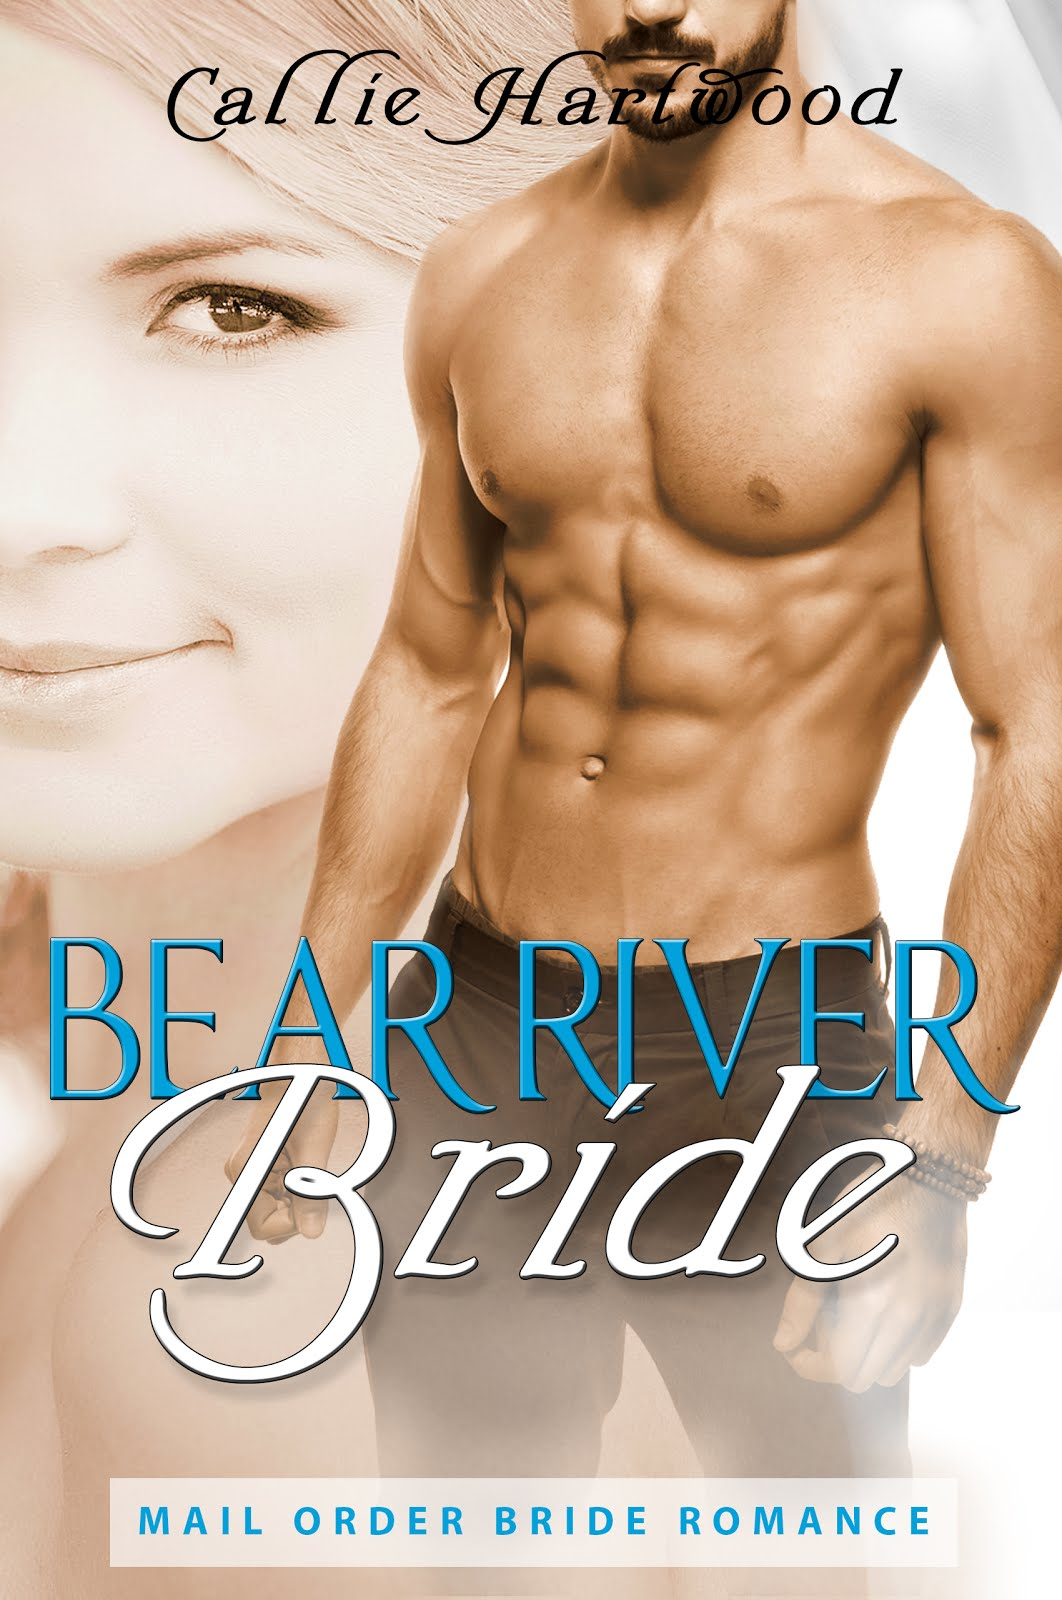 BBW Shifter Mail Order Bride Romance just 99 cents!